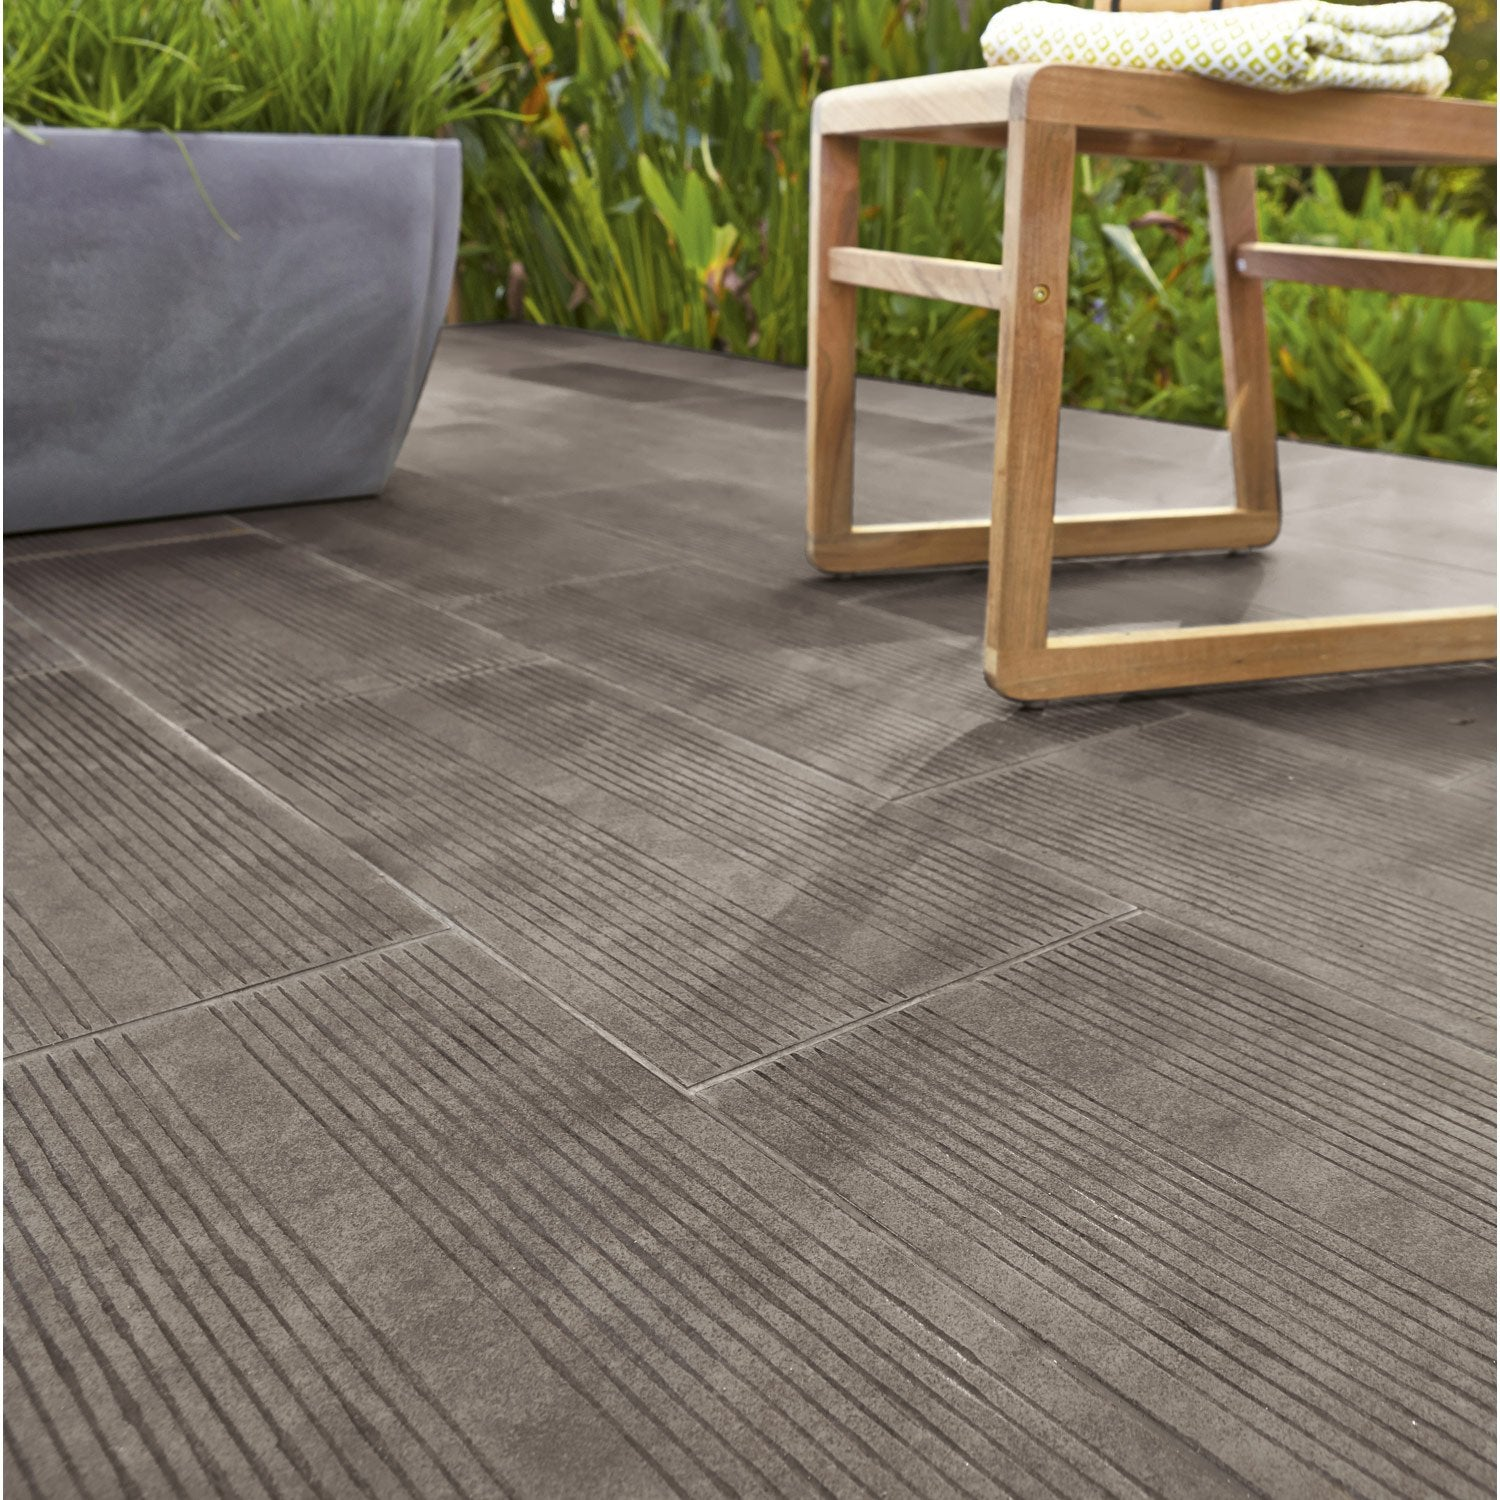 Carrelage exterieur anthracite elegant carrelage for Exterieur nature